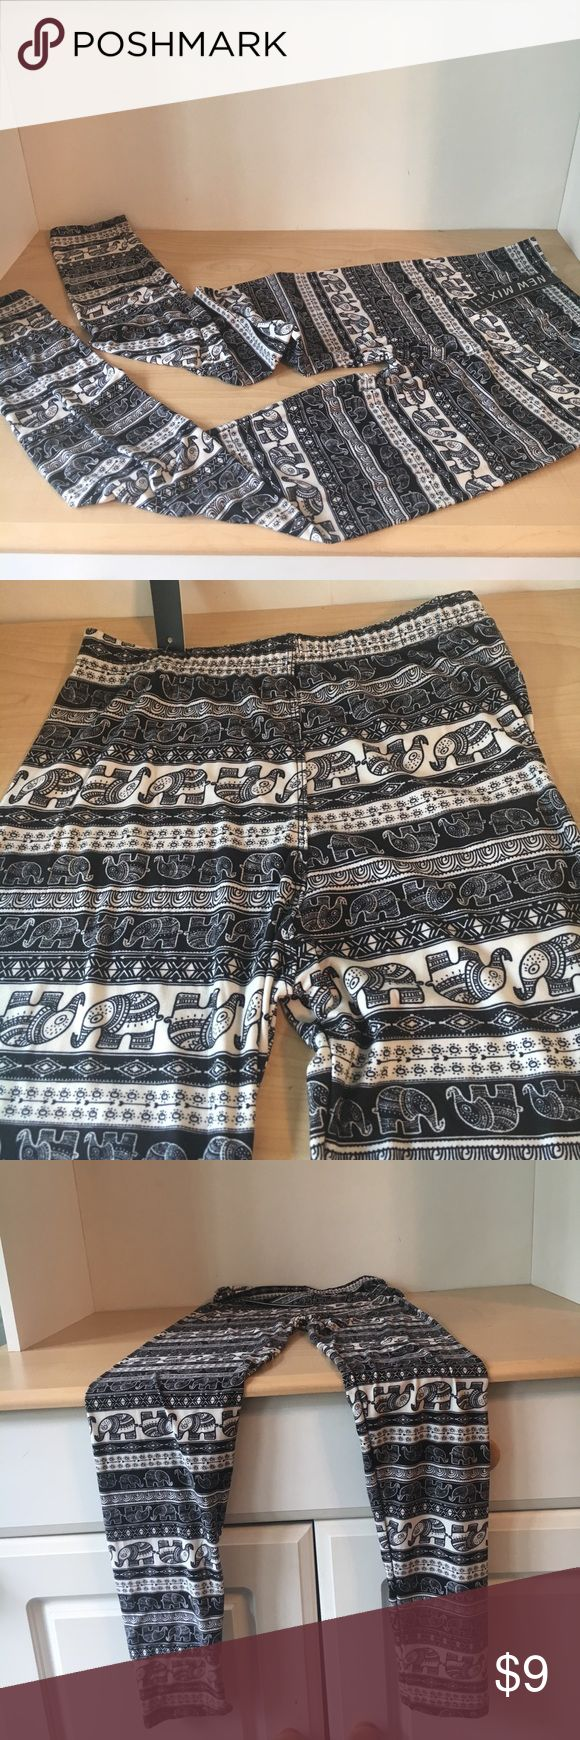 NWT Aztec Tribal Print Leggings NWT fashionable print leggings with elephant designs. Very soft and comfortable, double stitch seam allows for a better fit. 95% polyester, 5% spandex – to allow contouring to most body shapes. One size fits most. Versatile, lightweight and lined. Pants Leggings